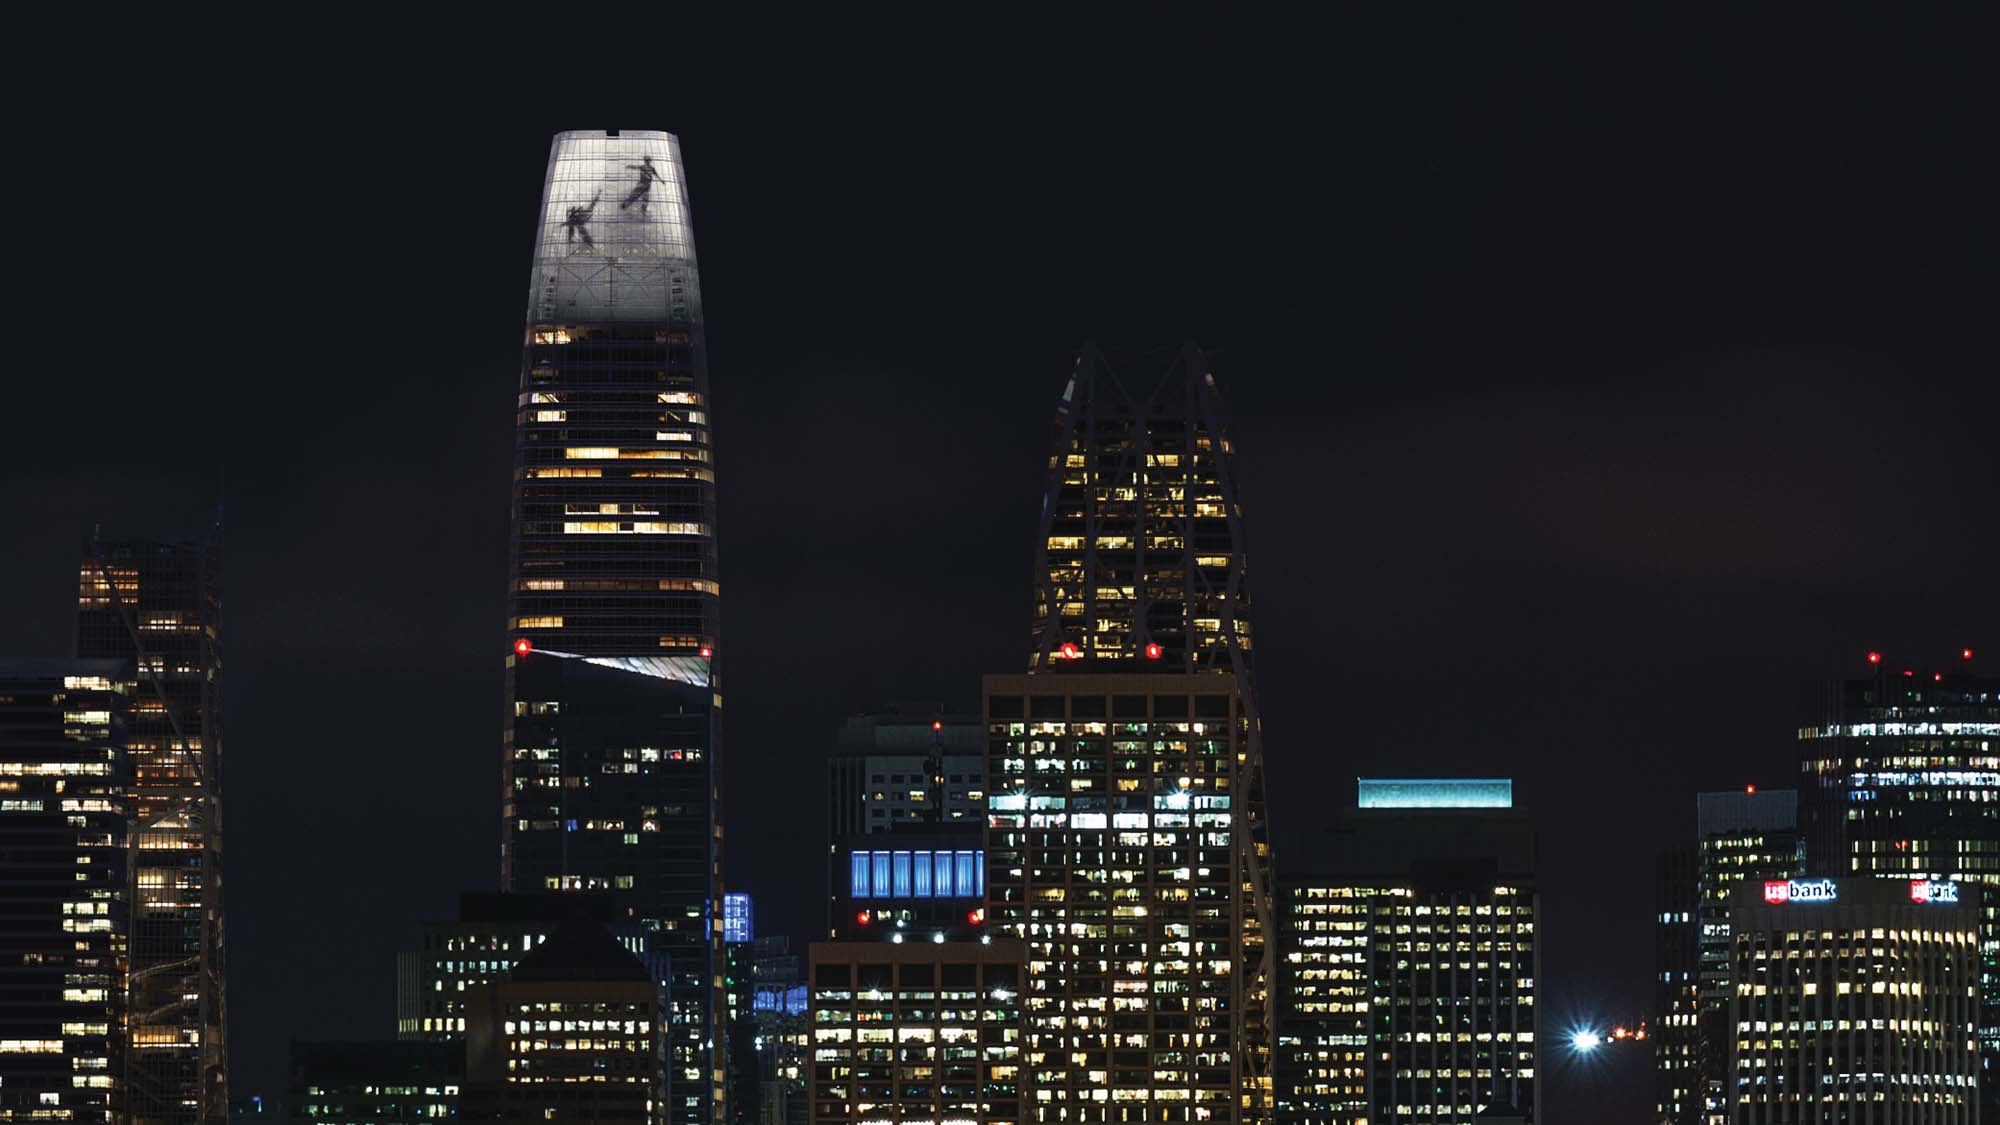 Renderings of human silhouttes dancing in a light display atop Salesforce Tower.